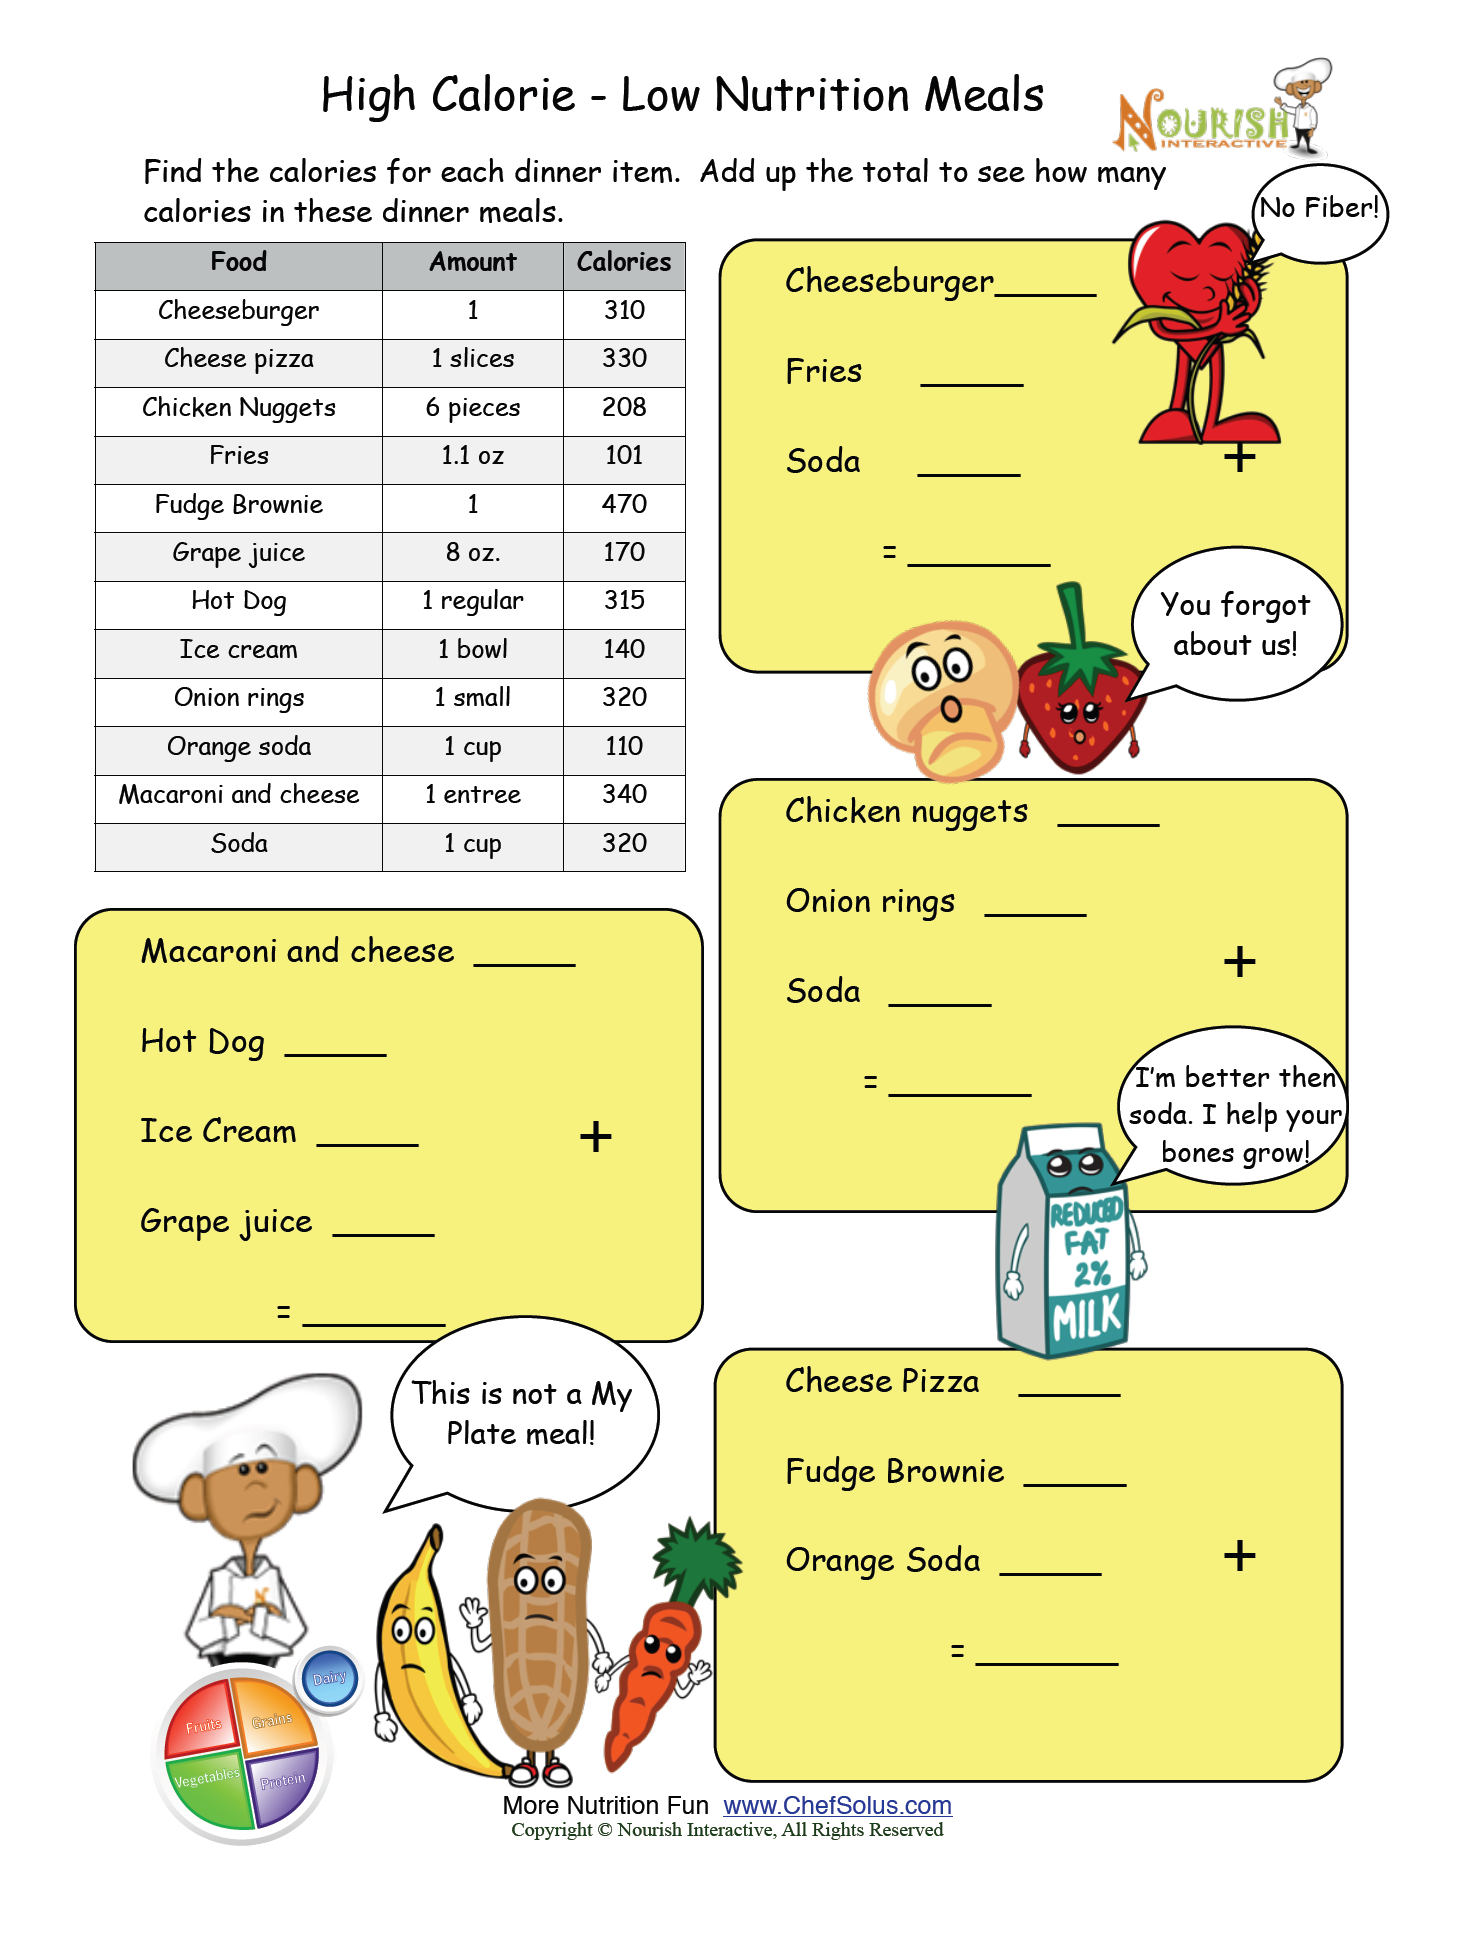 Worksheets Health And Nutrition Worksheets high calorie low nutrition meal math worksheet please make sure to print the answer